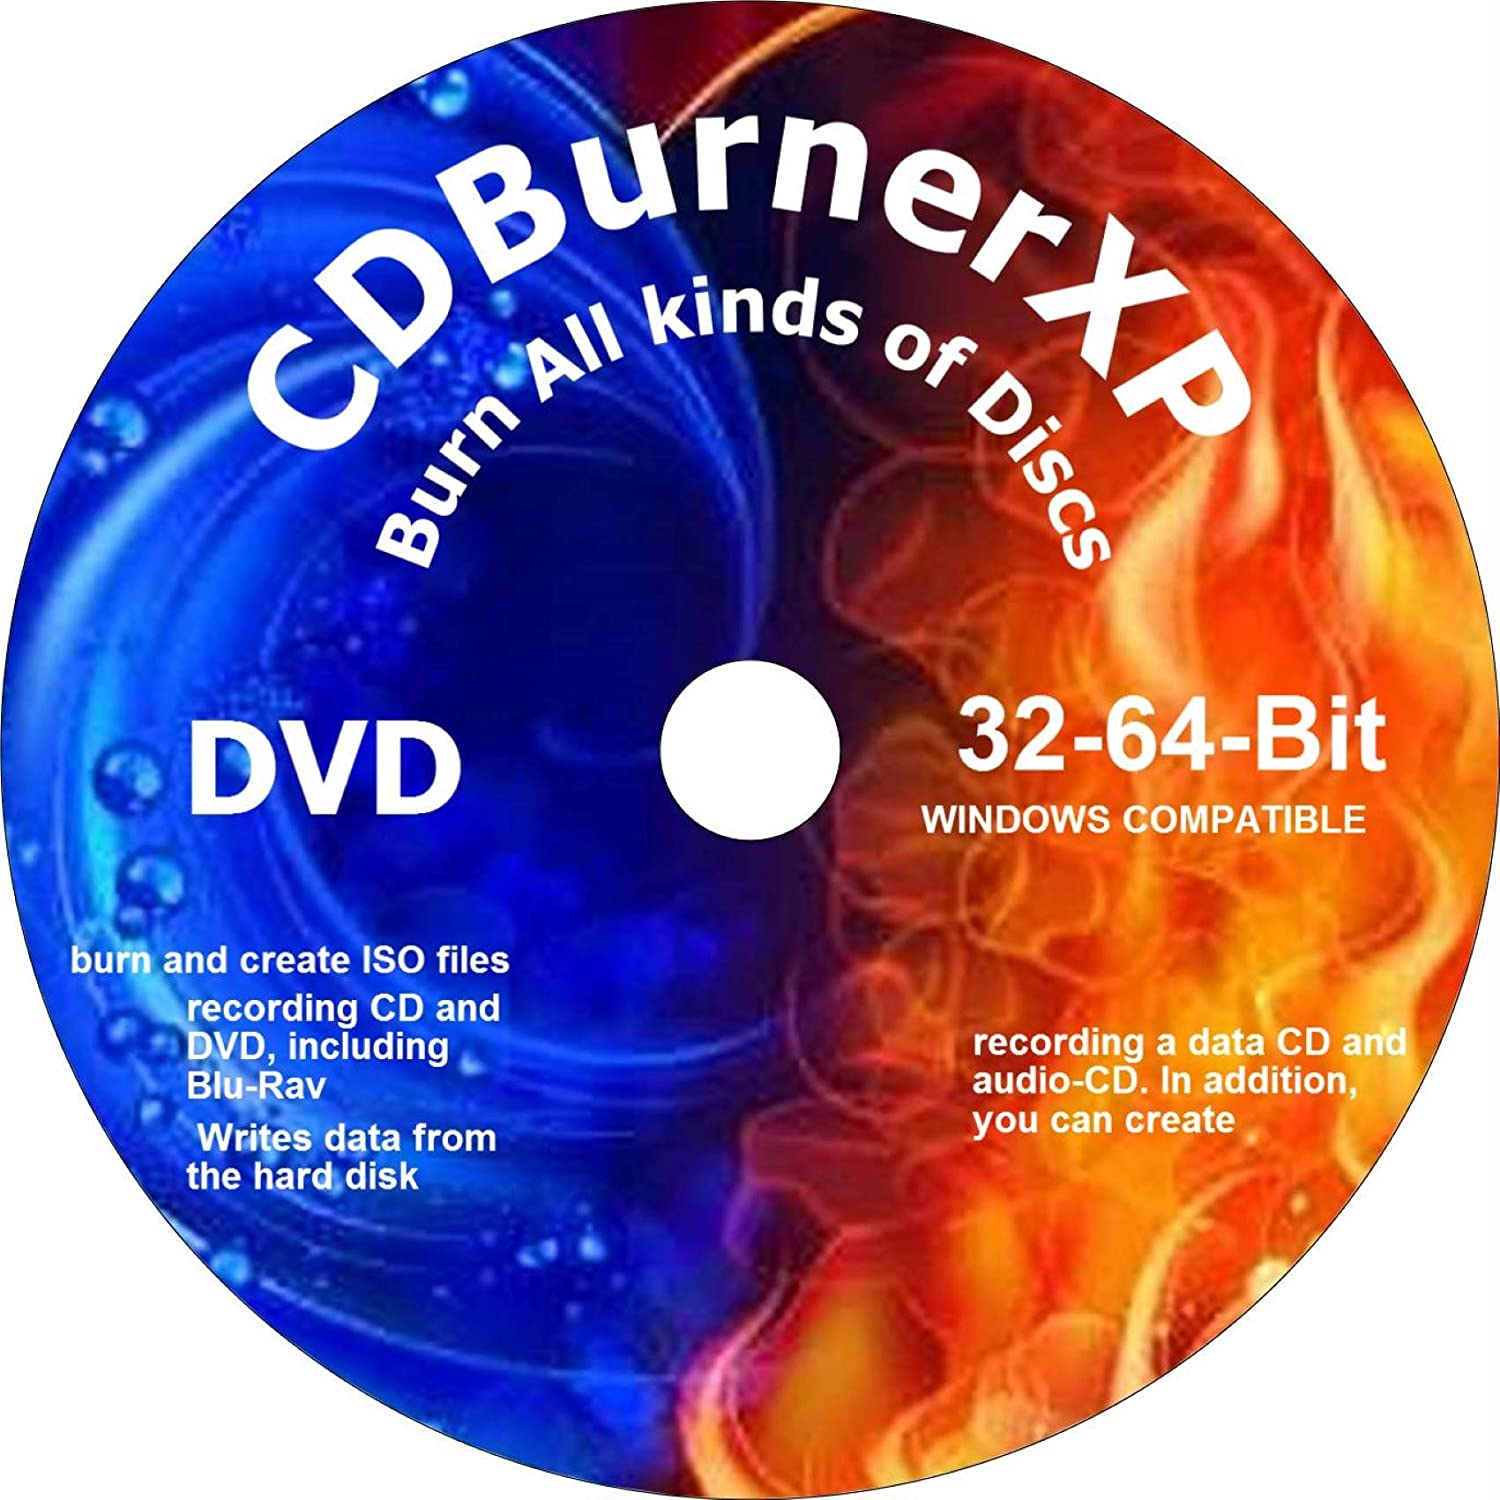 PRO CD/DVD BURNER XP BURNING DVD.+ FREE DVD VIDEO BURN AND CREATE DATA, AUDIO, BLU-RAY, ISO. COMPATIBLE WITH MICROSOFT WINDOWS PC. Great for recording Movies, Music and saving Photos on CD/DVD.